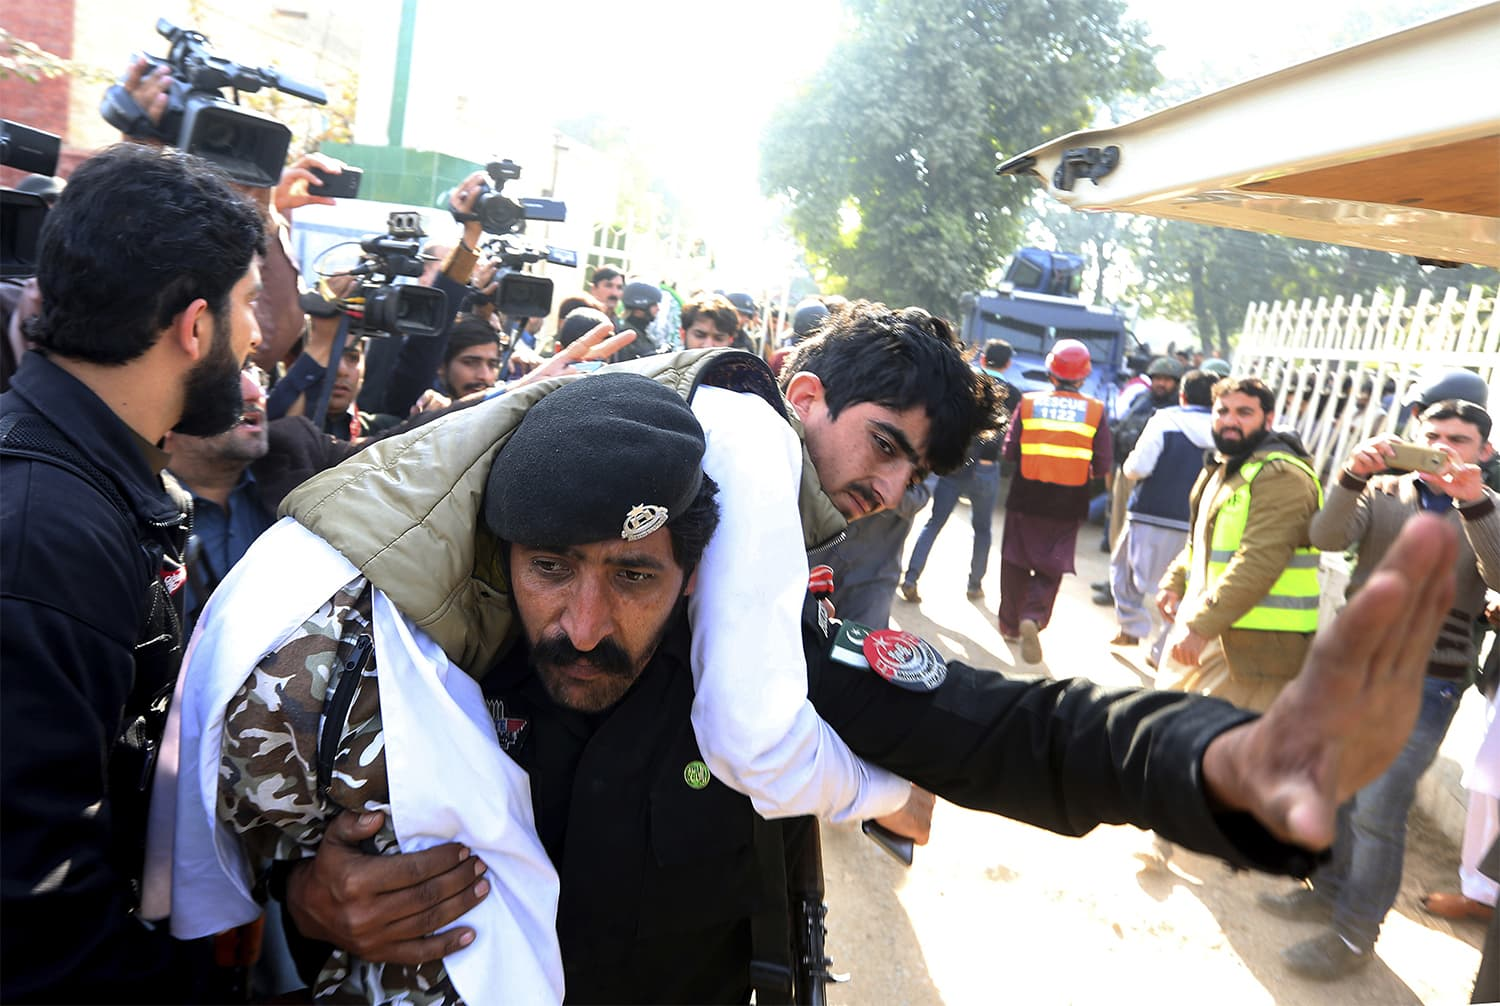 A security officia carries an injured man to an ambulance at the site of the attack. ─ AP